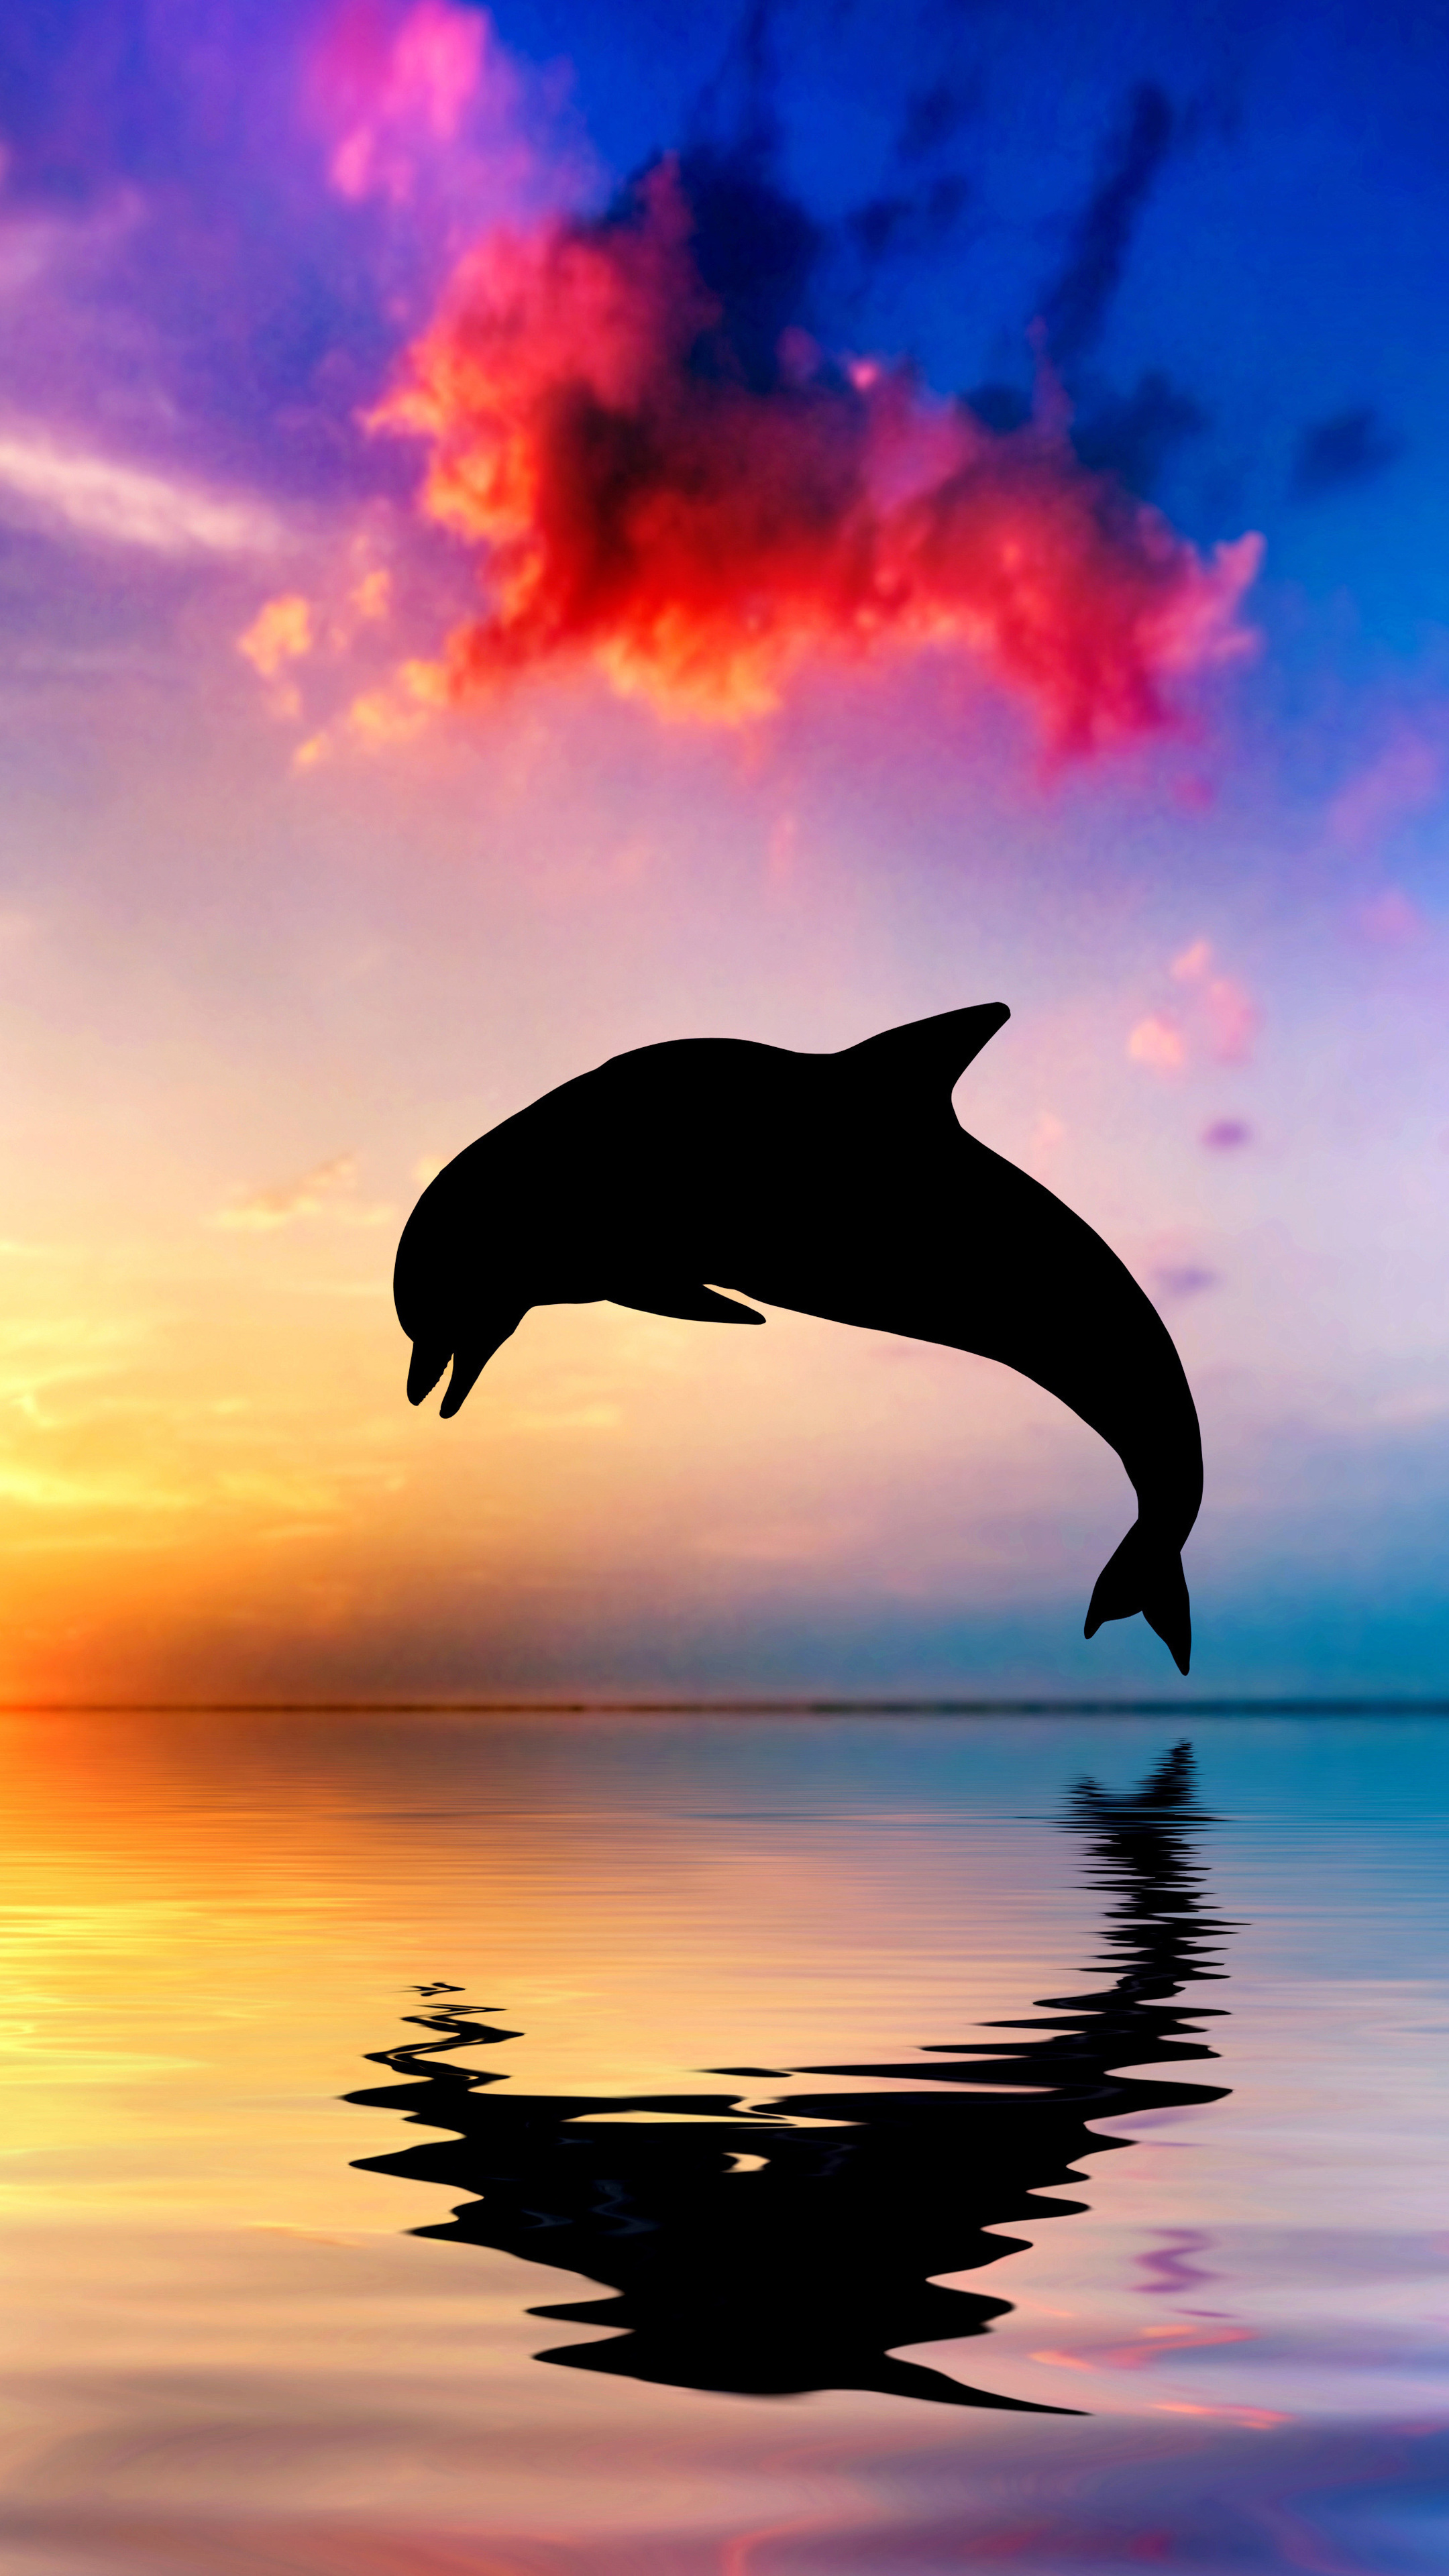 https://hdqwalls.com/download/dolphin-jumping-out-of-water-sunset-view-4k-b3-2160x3840.jpg Dolphins